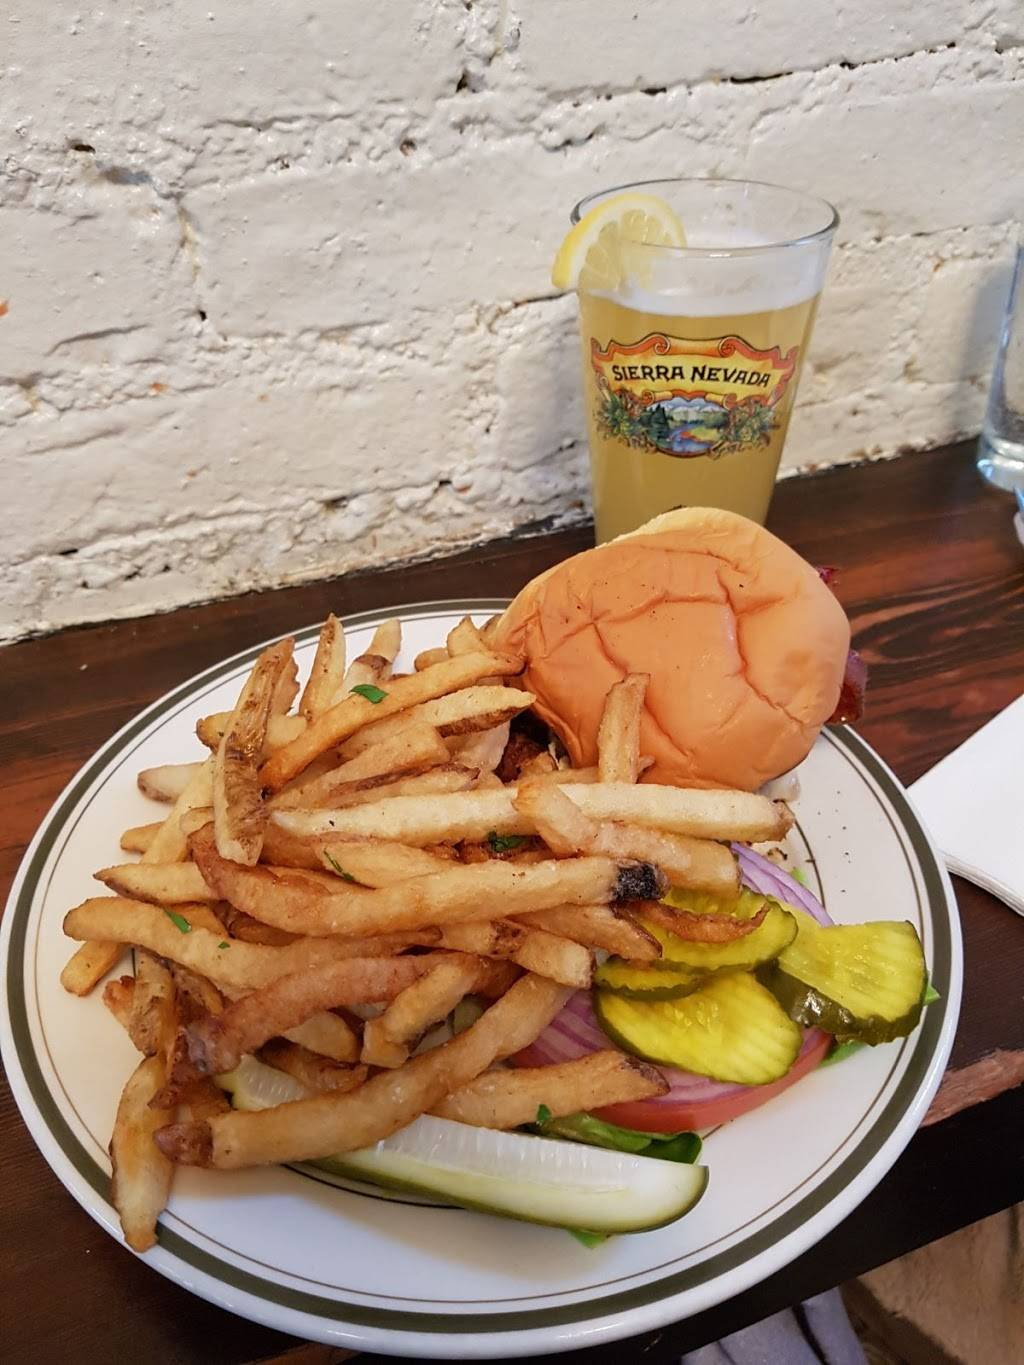 DuMont Burger | restaurant | 314 Bedford Ave, Brooklyn, NY 11211, USA | 7183846127 OR +1 718-384-6127